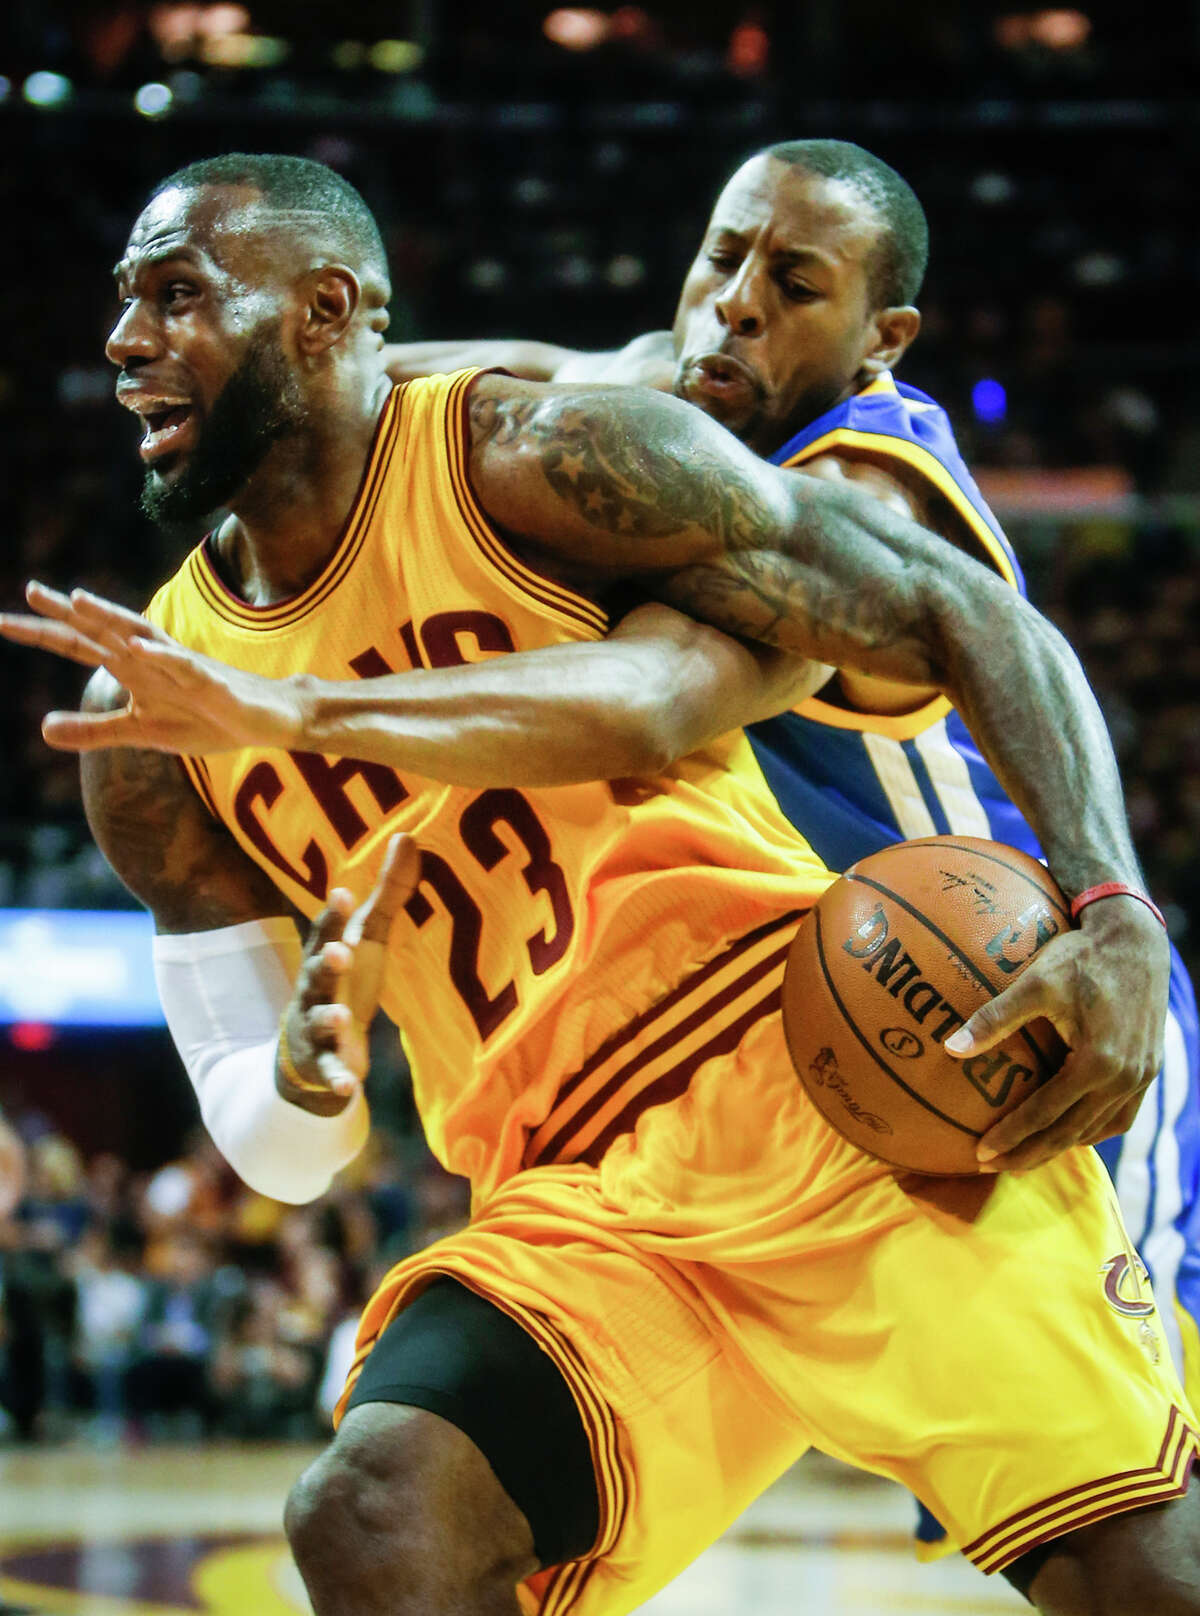 It was the defense of Andre Iguodala (right) against LeBron James that led coach Steve Kerr to insert Iguodala into the starting lineup for the last three games of the Finals.